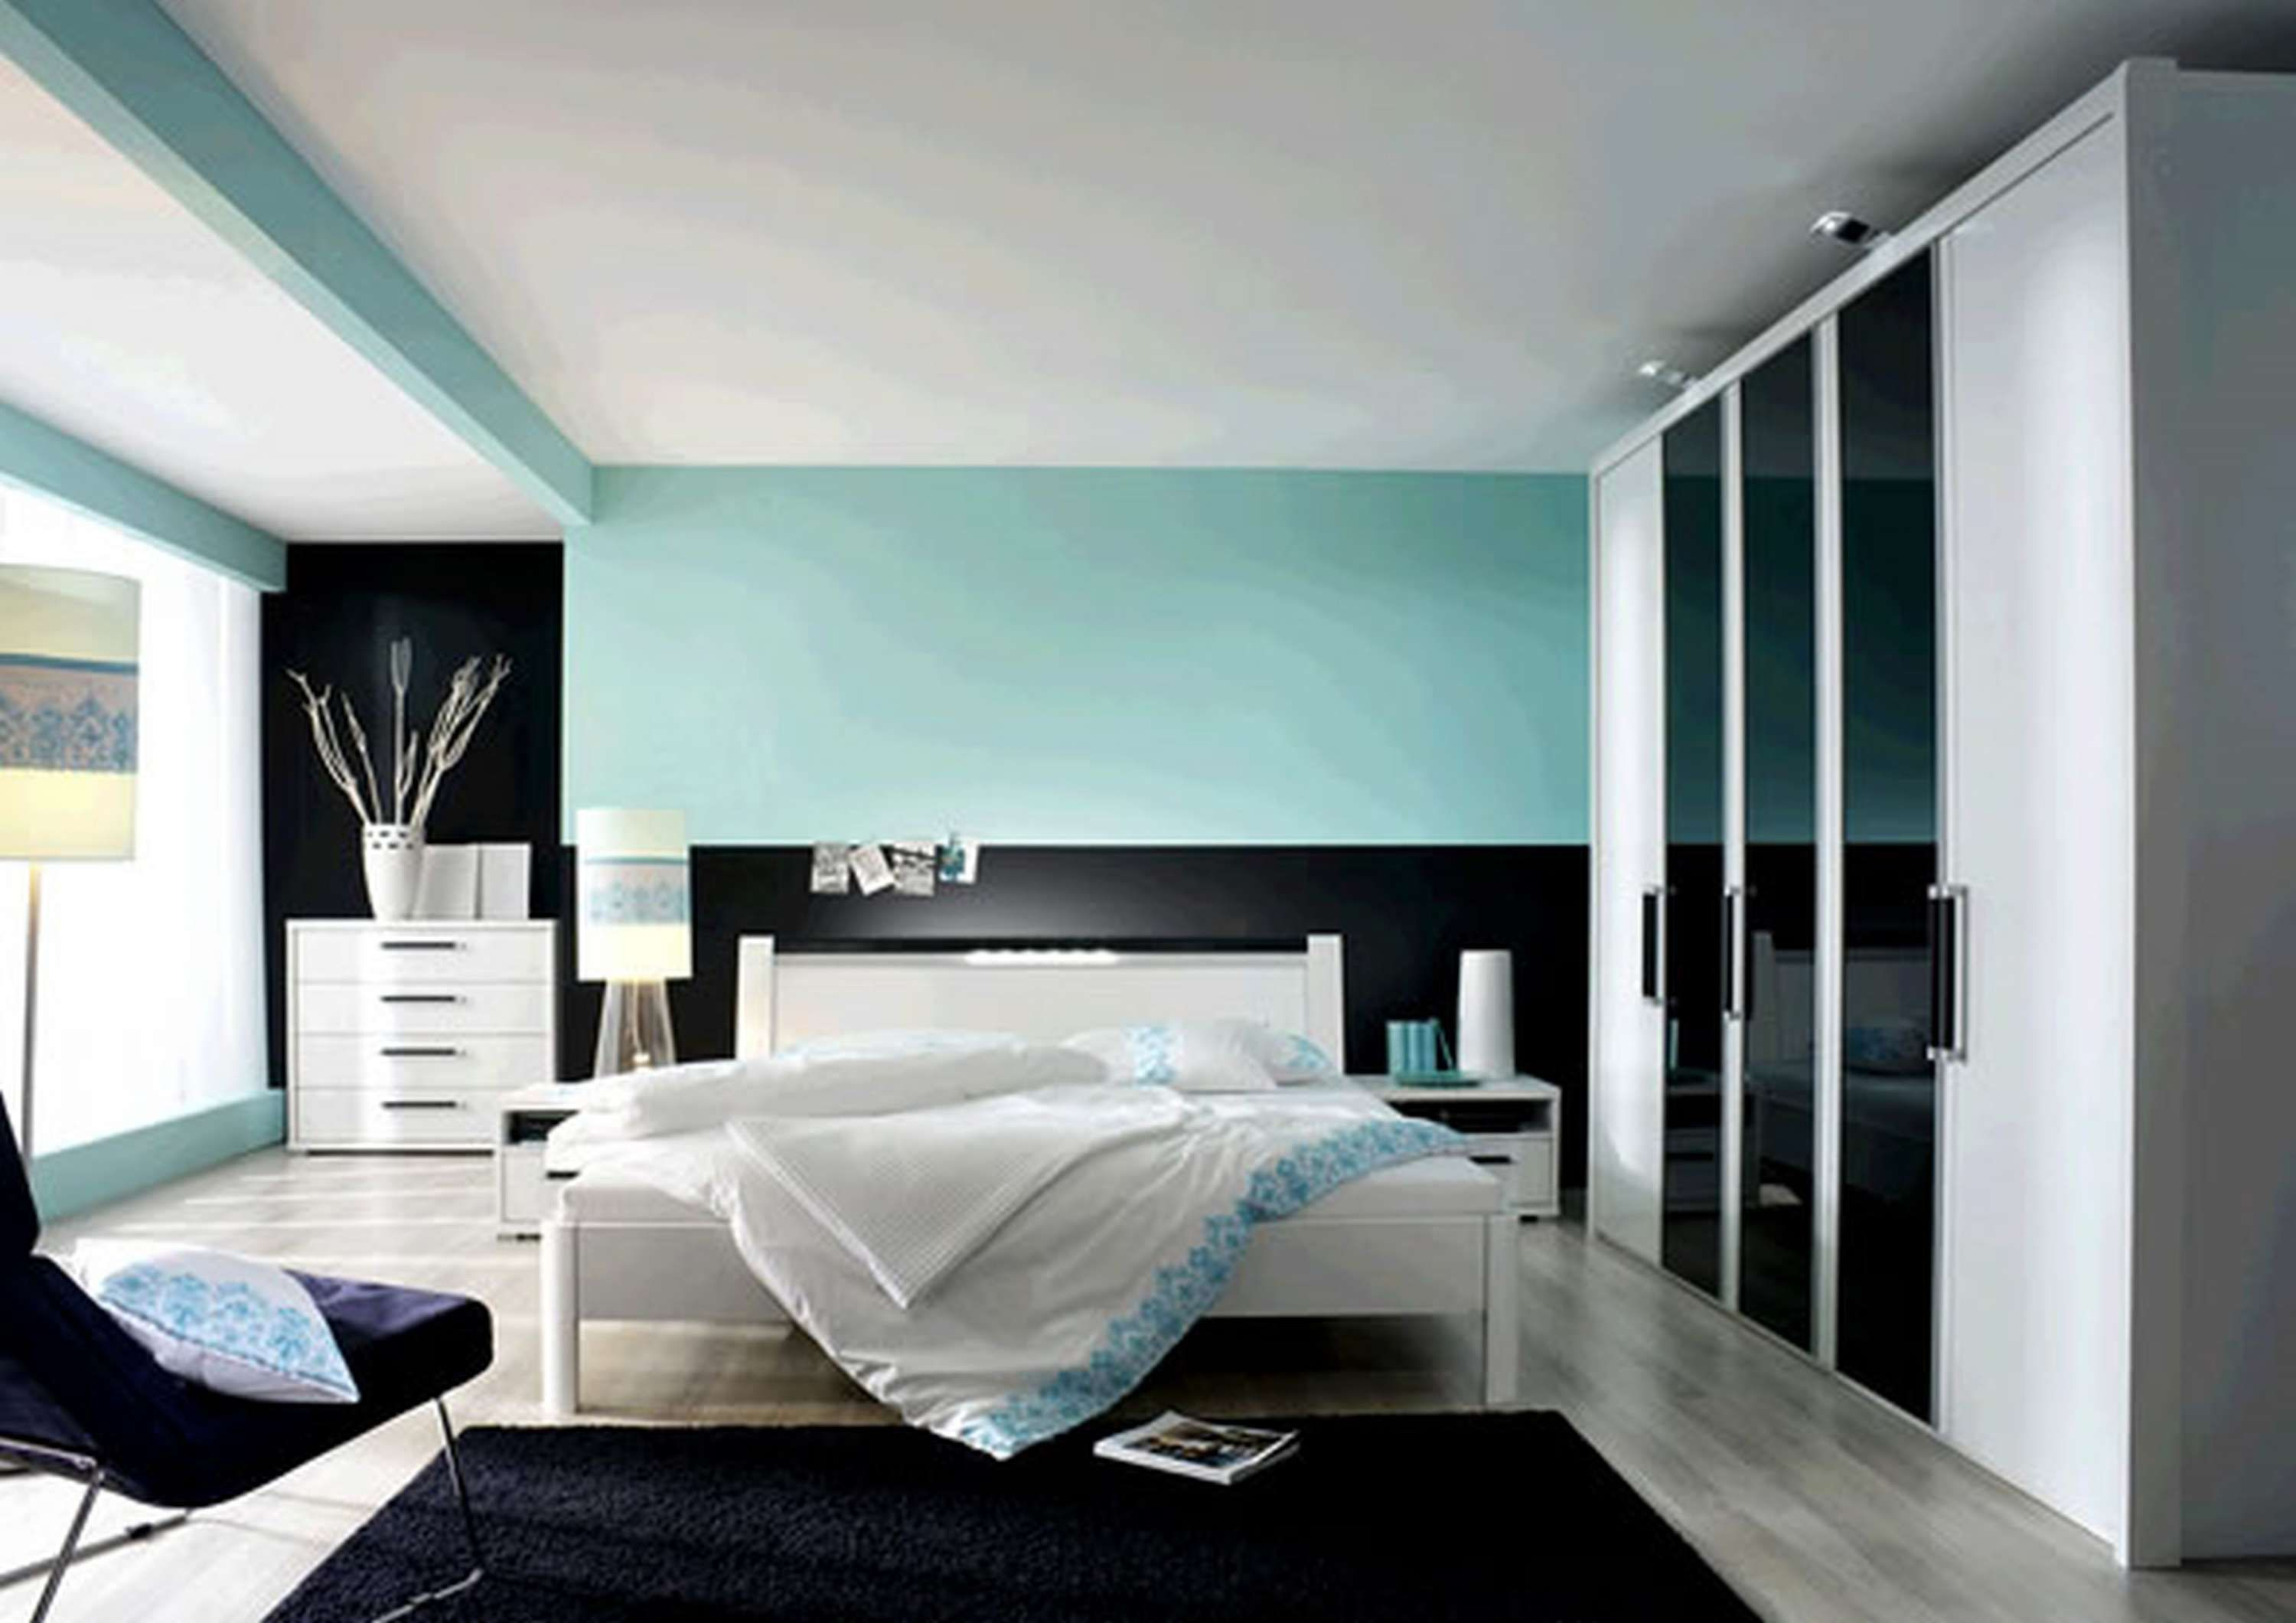 8 Beautiful Wall Color With Black And White Furniture Gallery Amazing Bedroom Designs Modern Bedroom Colors Bedroom Color Schemes